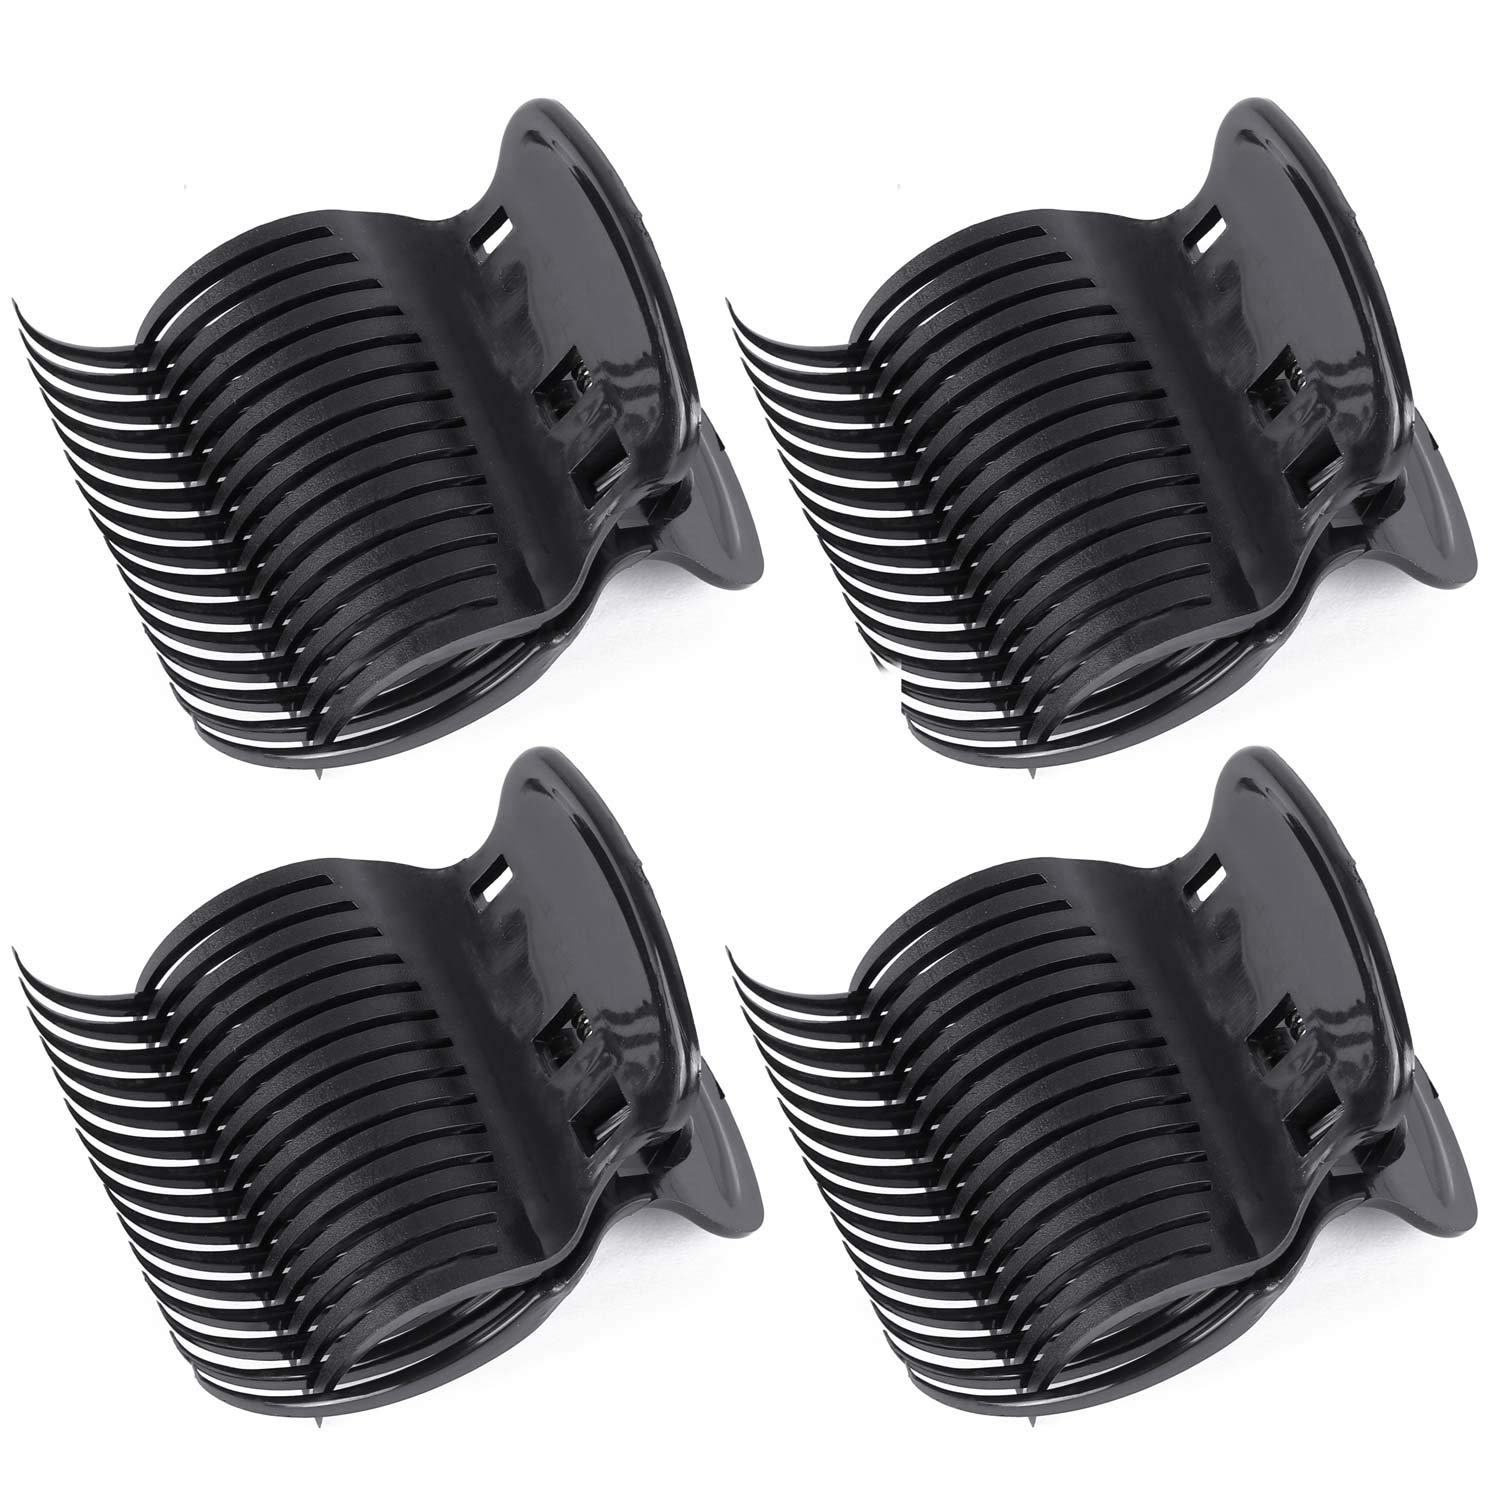 24 Hot Roller Clips for Hair Curler Clip Replacement Free shipping Claw S Direct stock discount